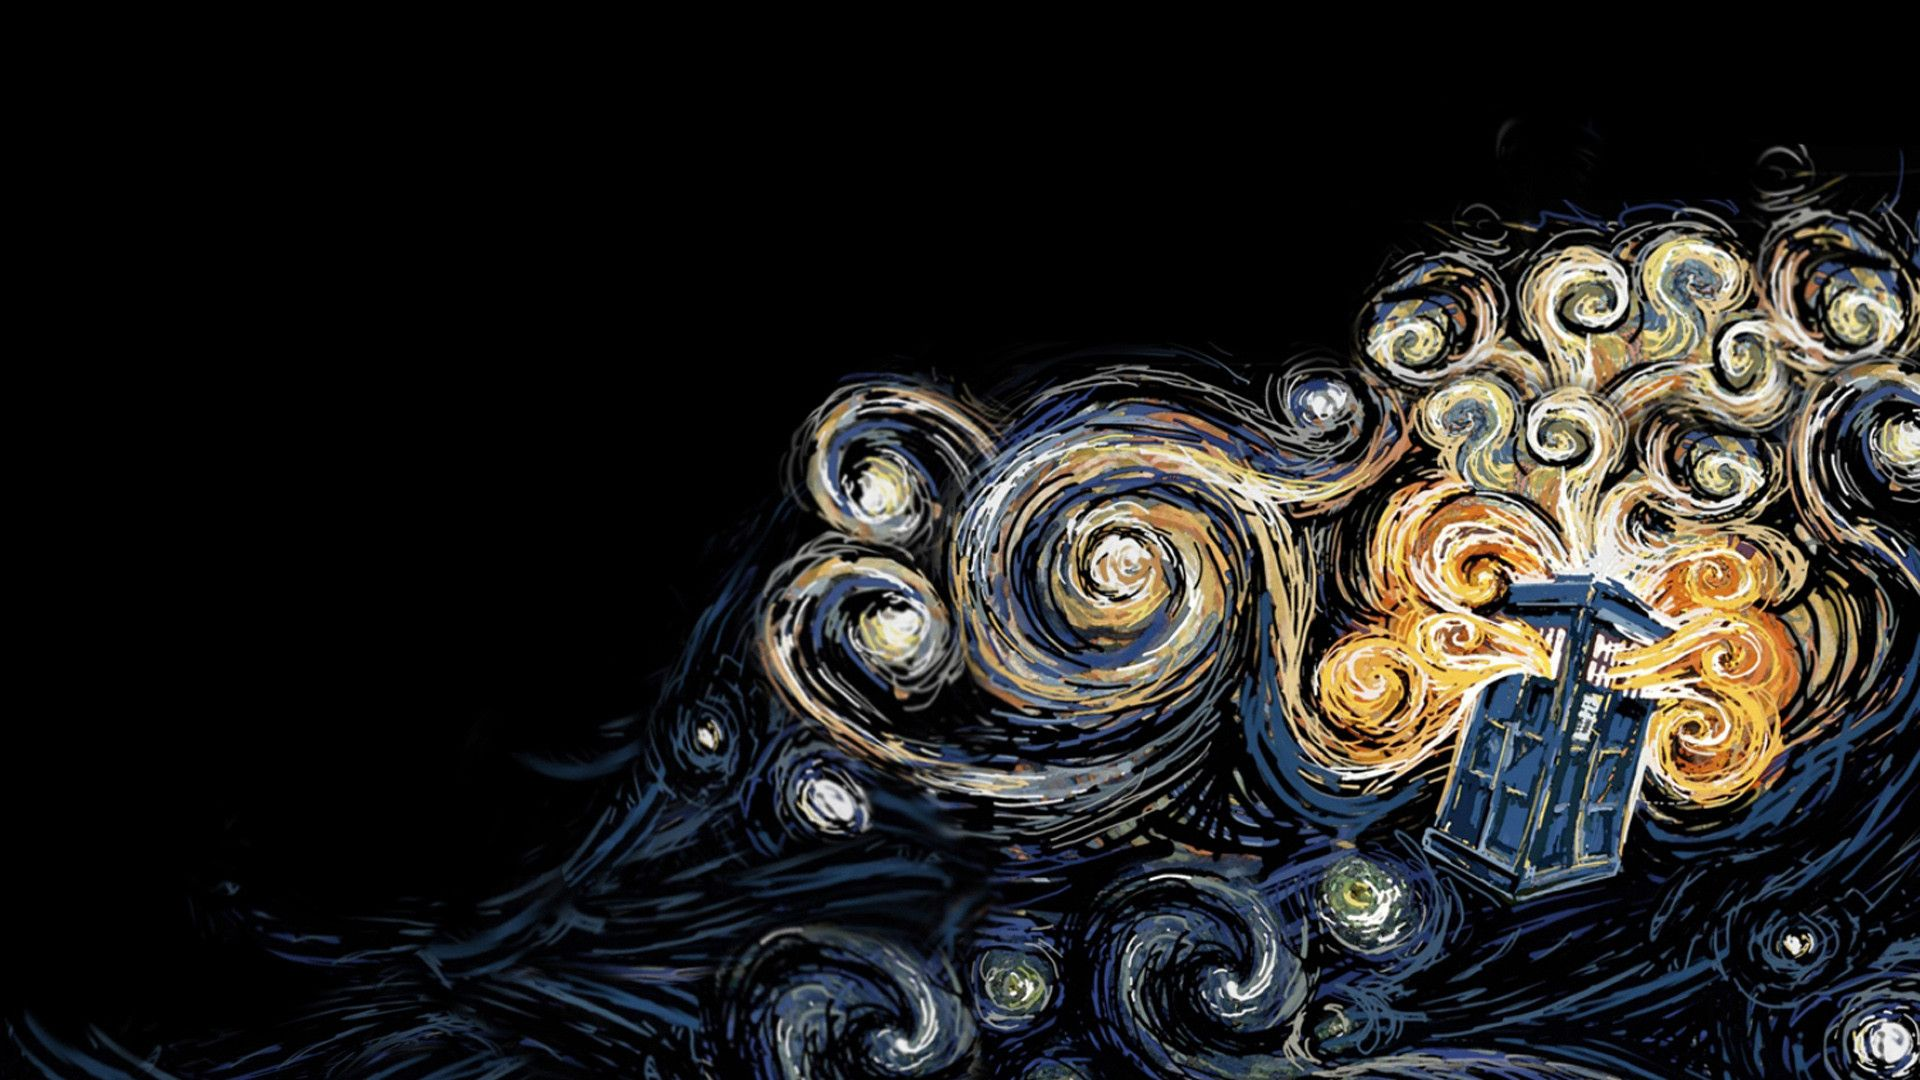 Van Gogh Doctor Who Wallpapers Top Free Van Gogh Doctor Who Backgrounds Wallpaperaccess